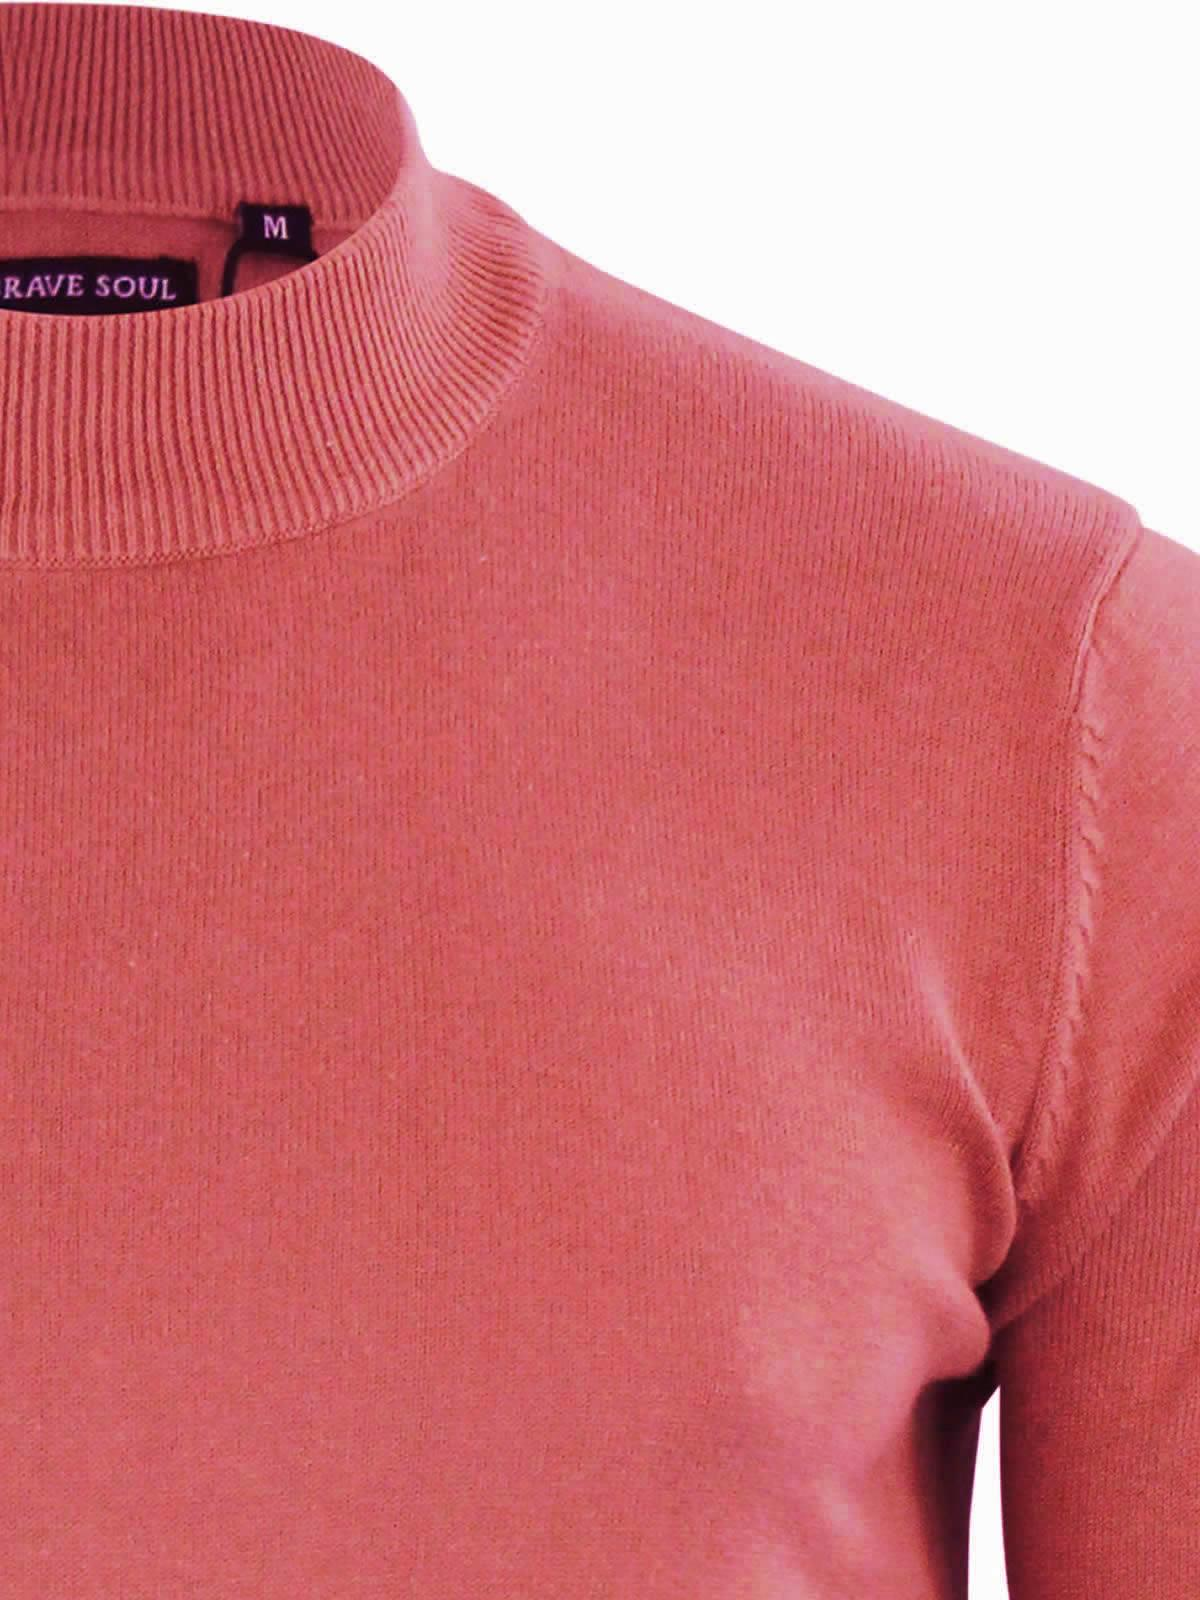 Mens-Jumper-Brave-Soul-Turtle-Neck-Cotton-Pull-Over-Sweater thumbnail 33